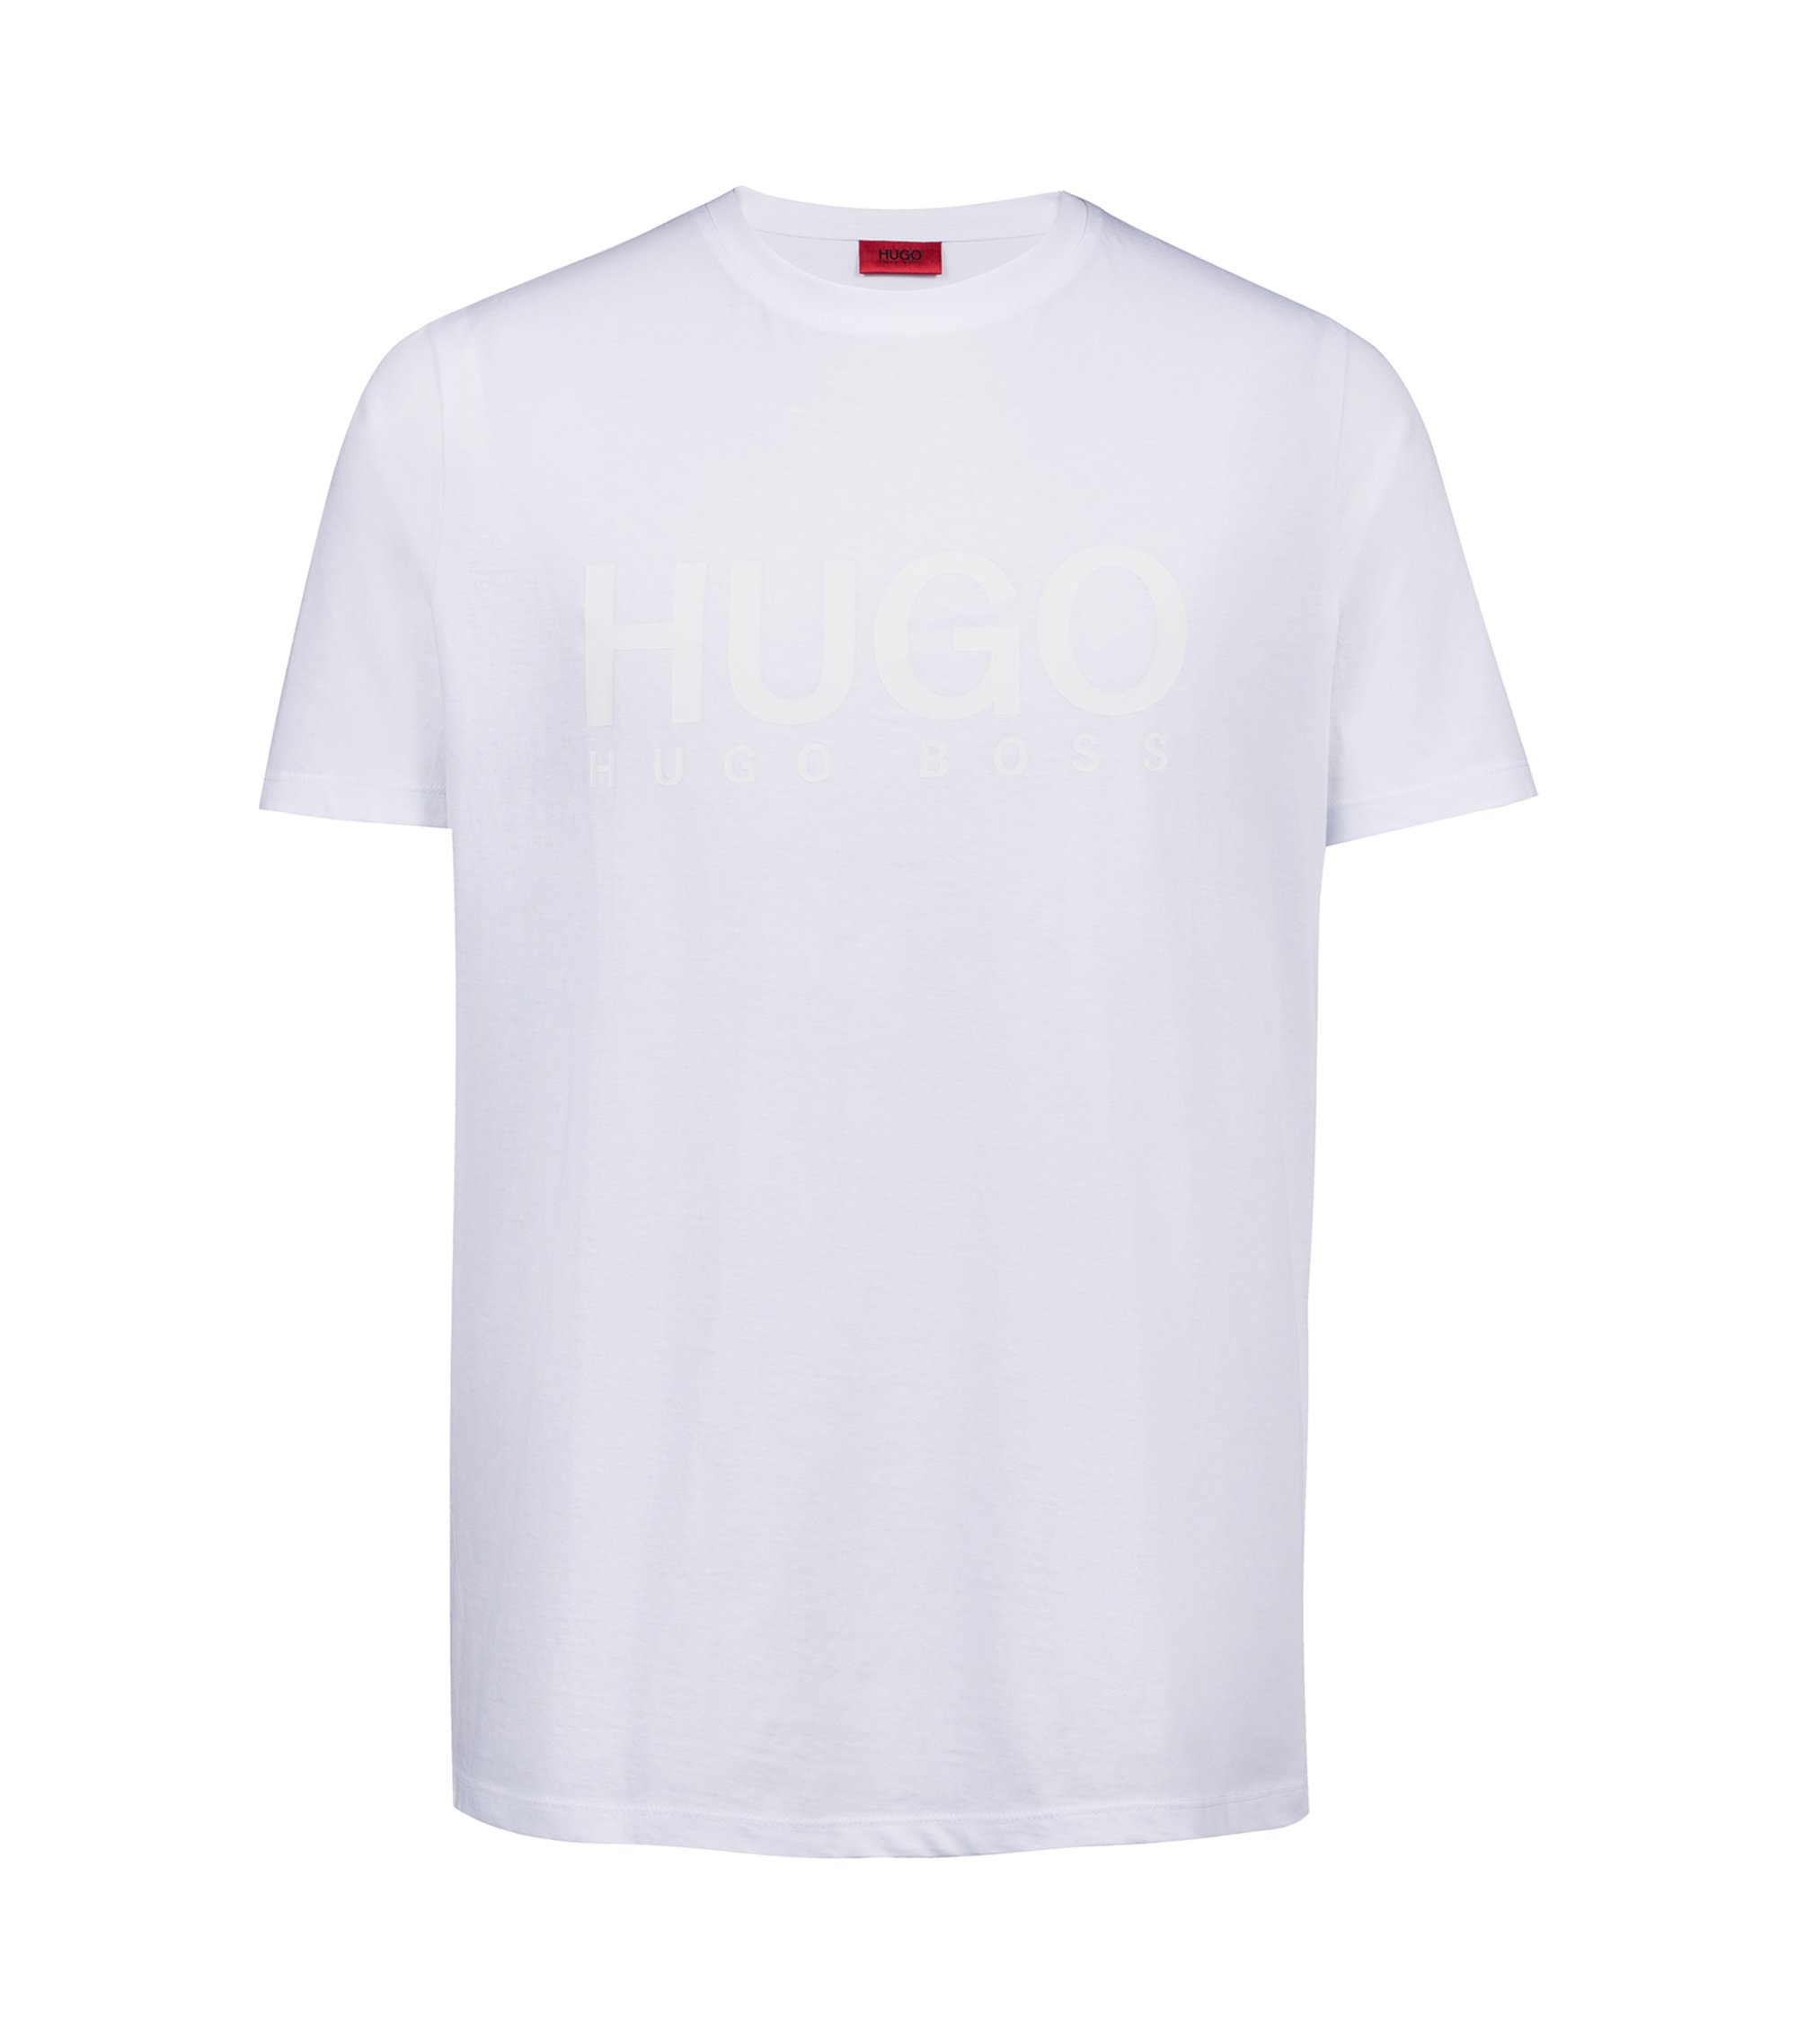 Logo T-shirt in single jersey cotton, White